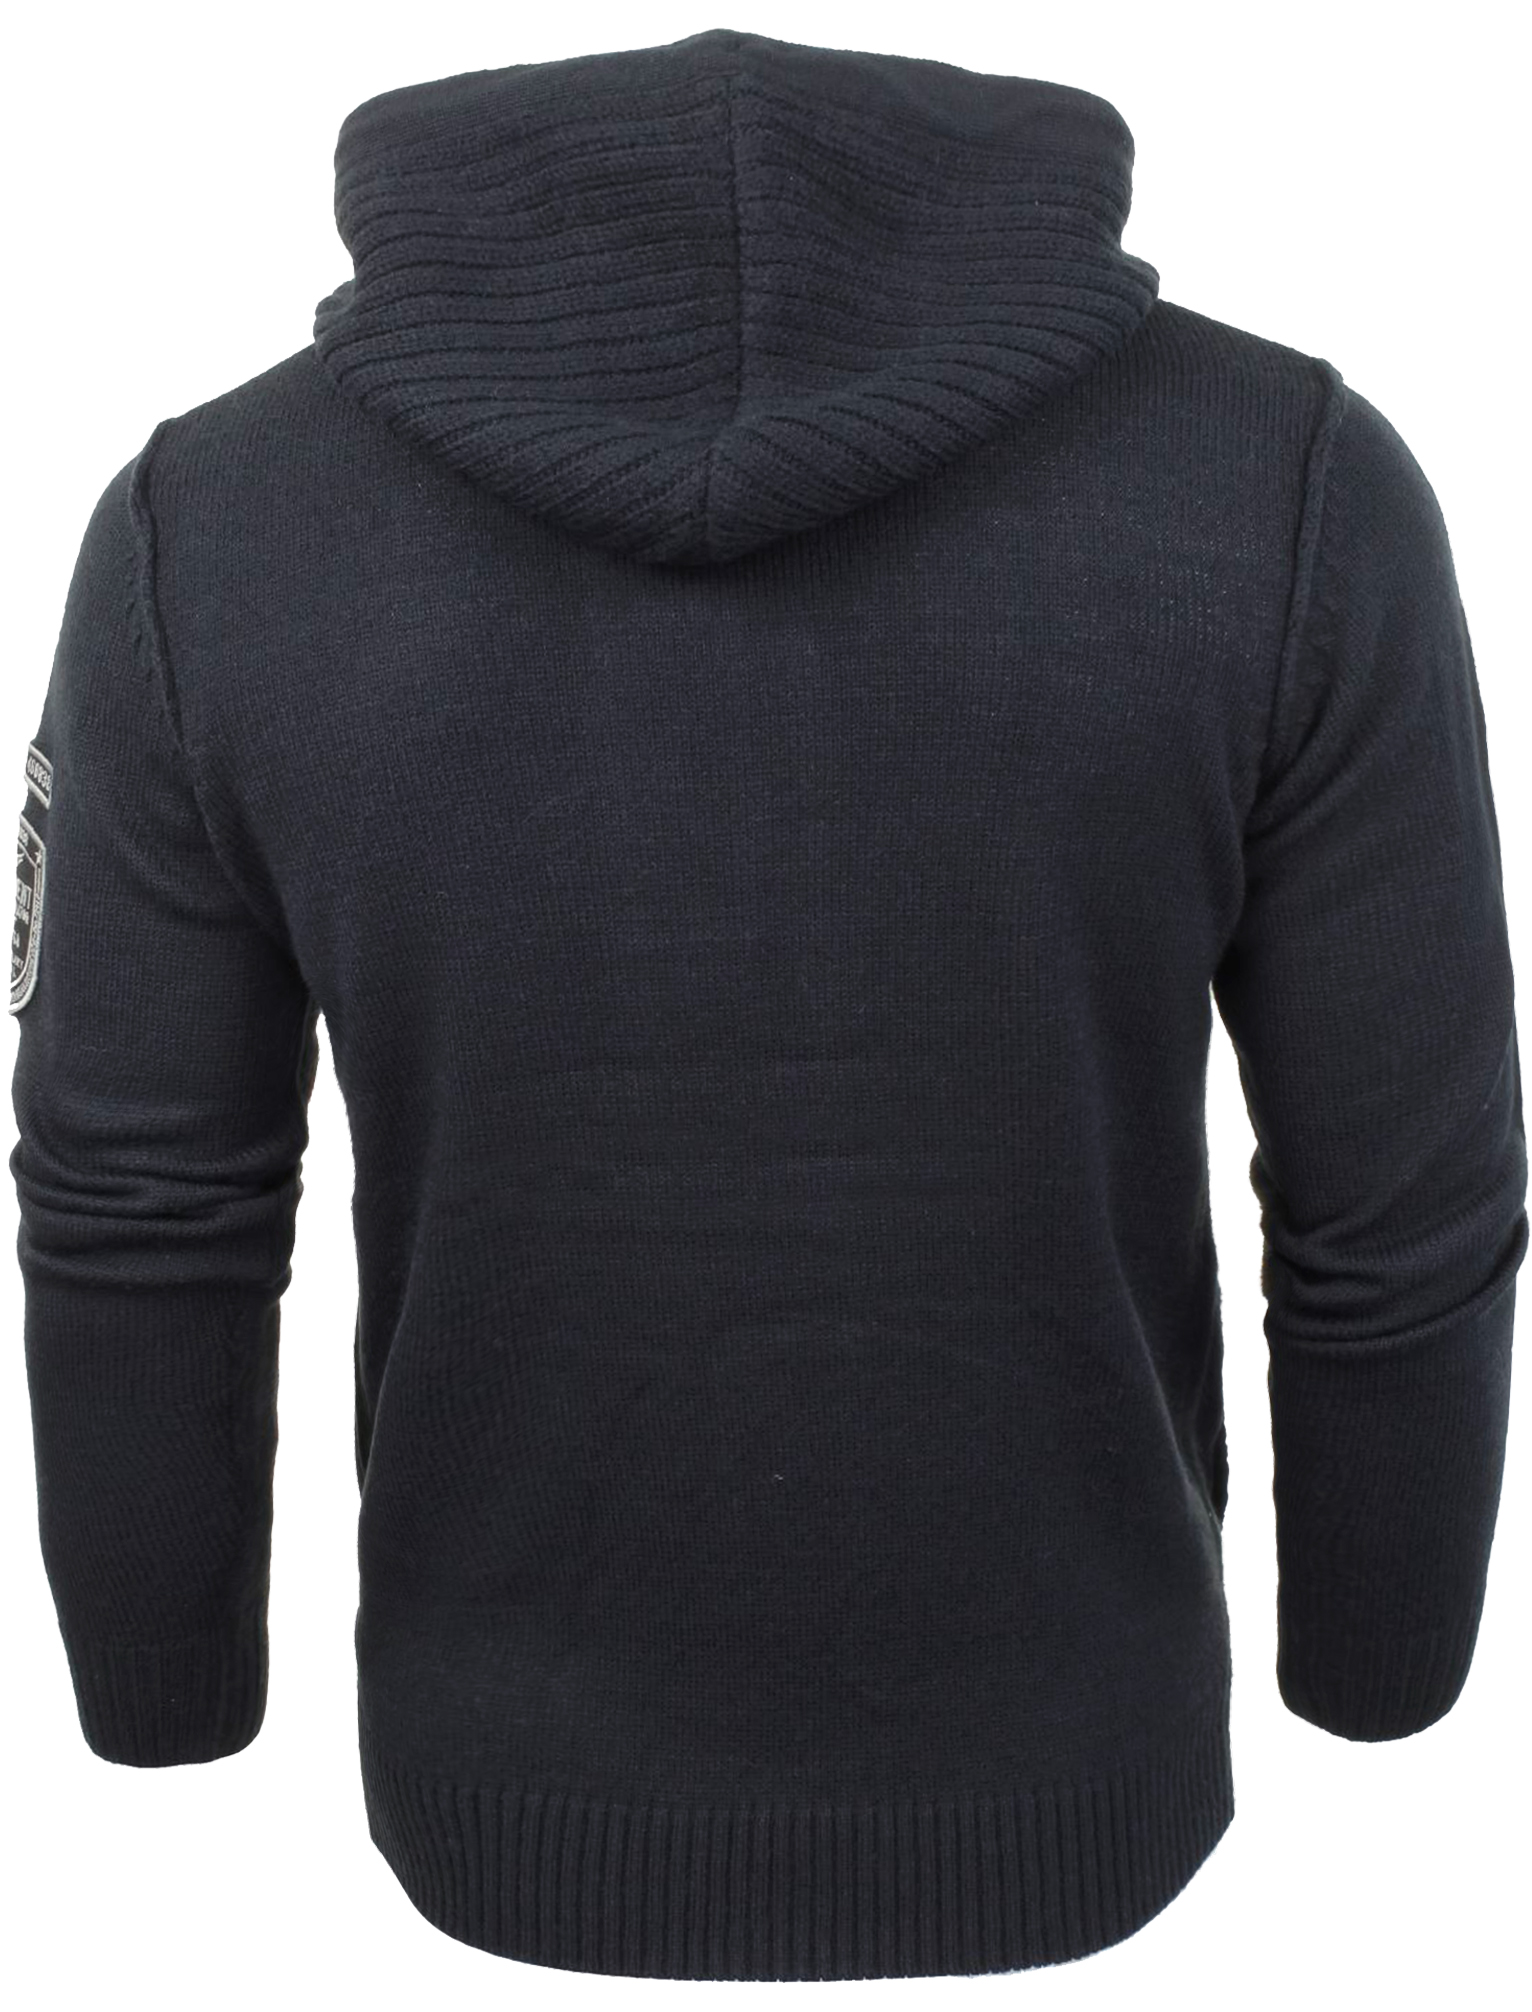 Mens Dissident Cruise Zip Up Hooded Sweater Hoodie Knitted ...